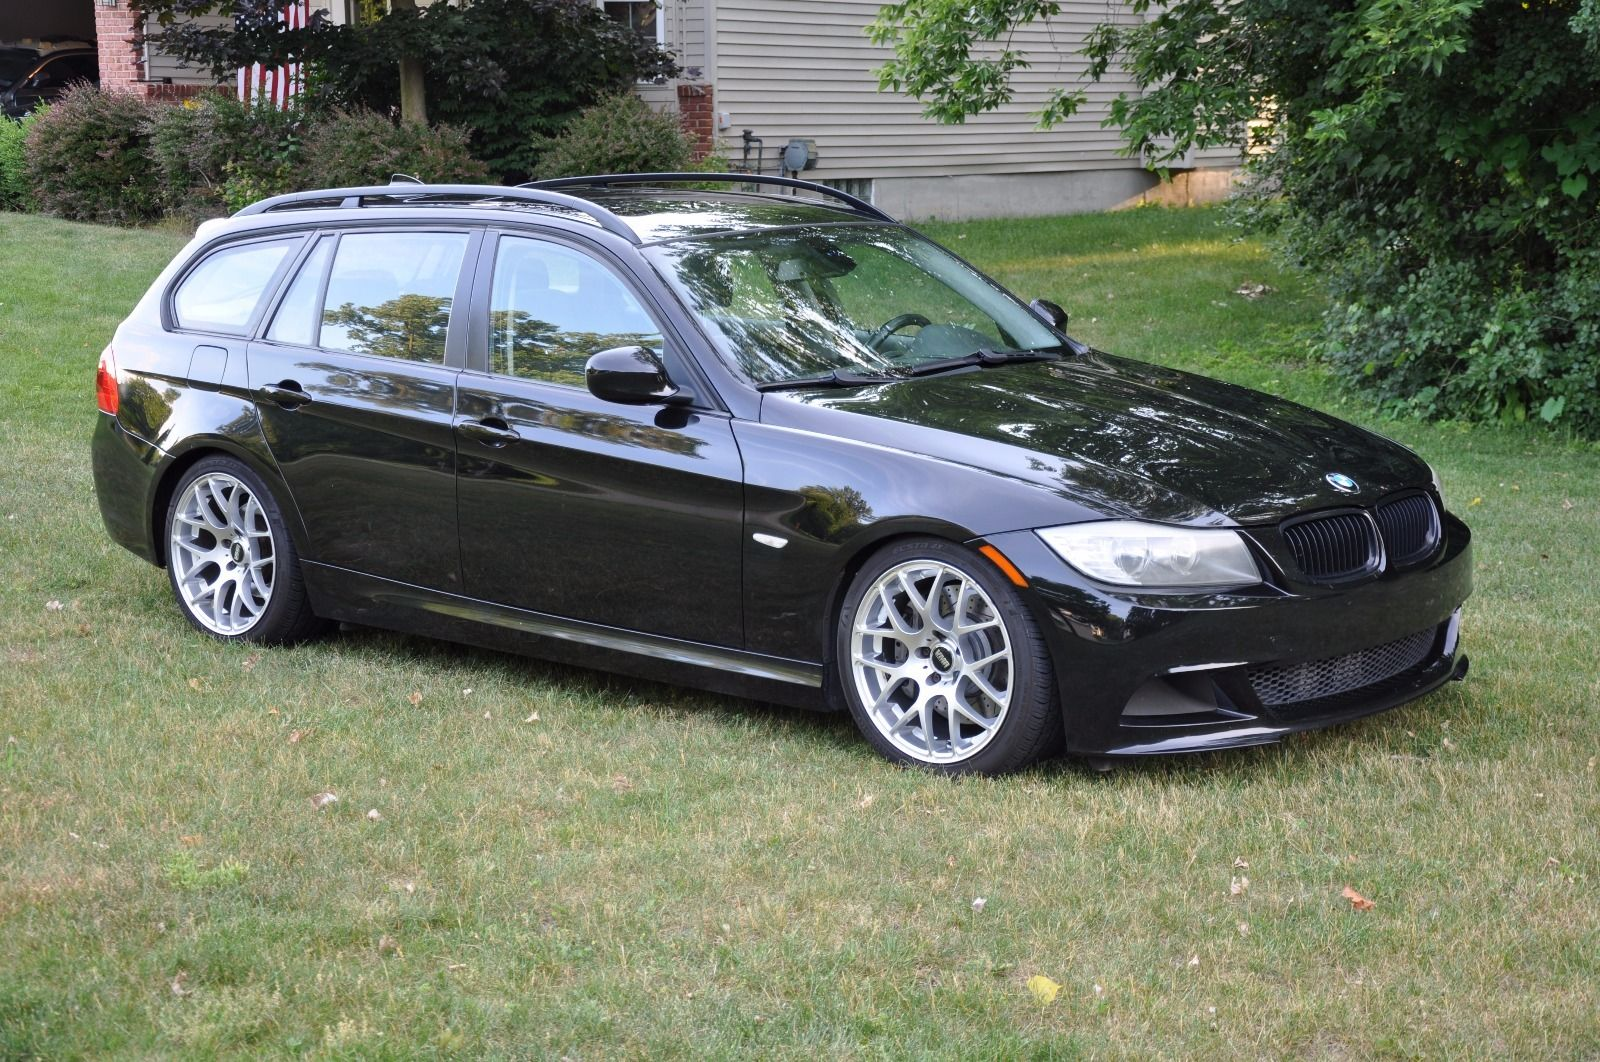 For Sale Bmw 328i Wagon With A Turbo N55 Engine Swap Depot